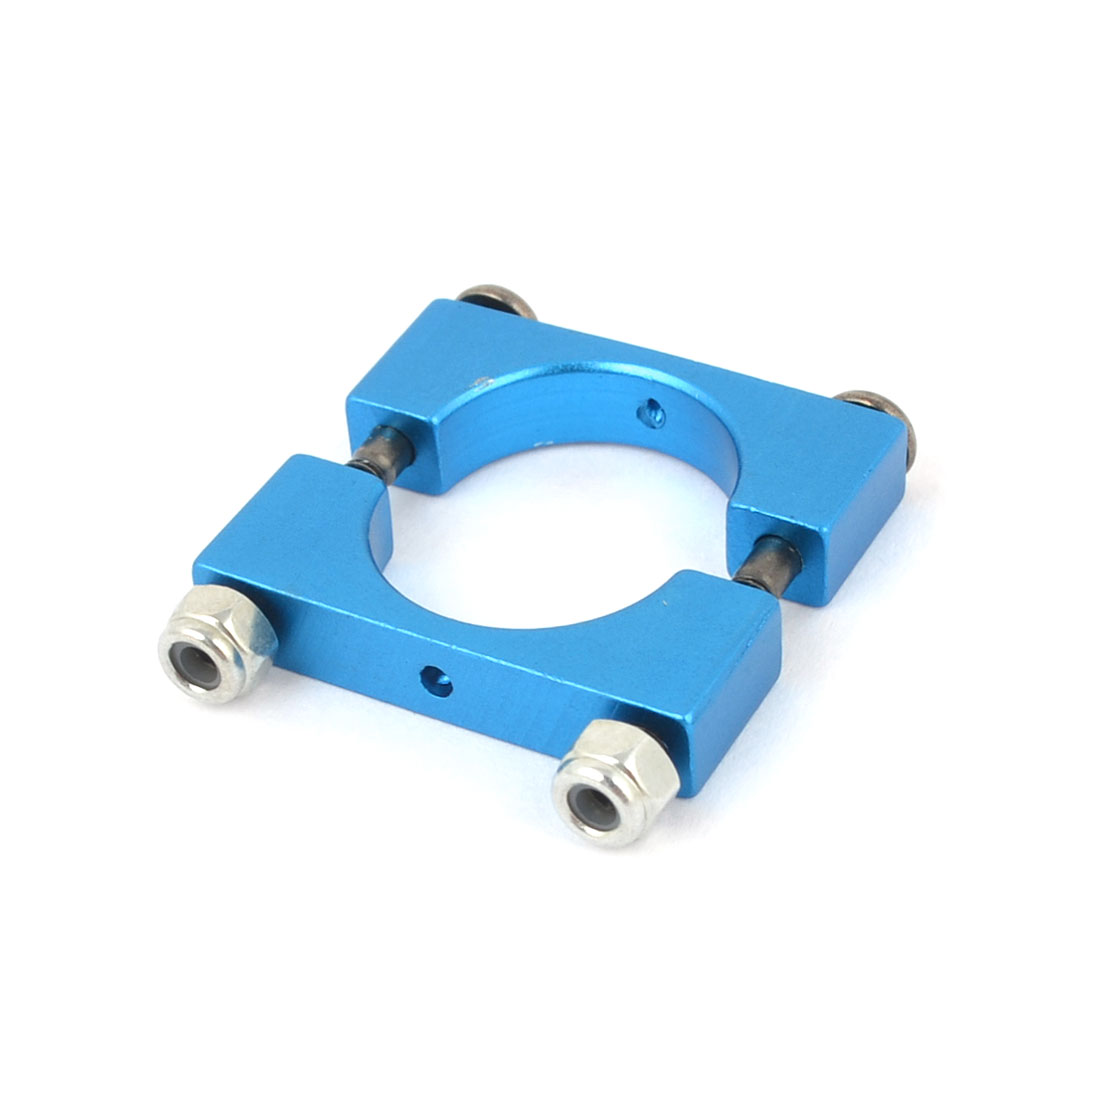 15mm Blue Aluminum Clamp for Carbon Fiber Tube Quadcopter Hexacopter Octocopter